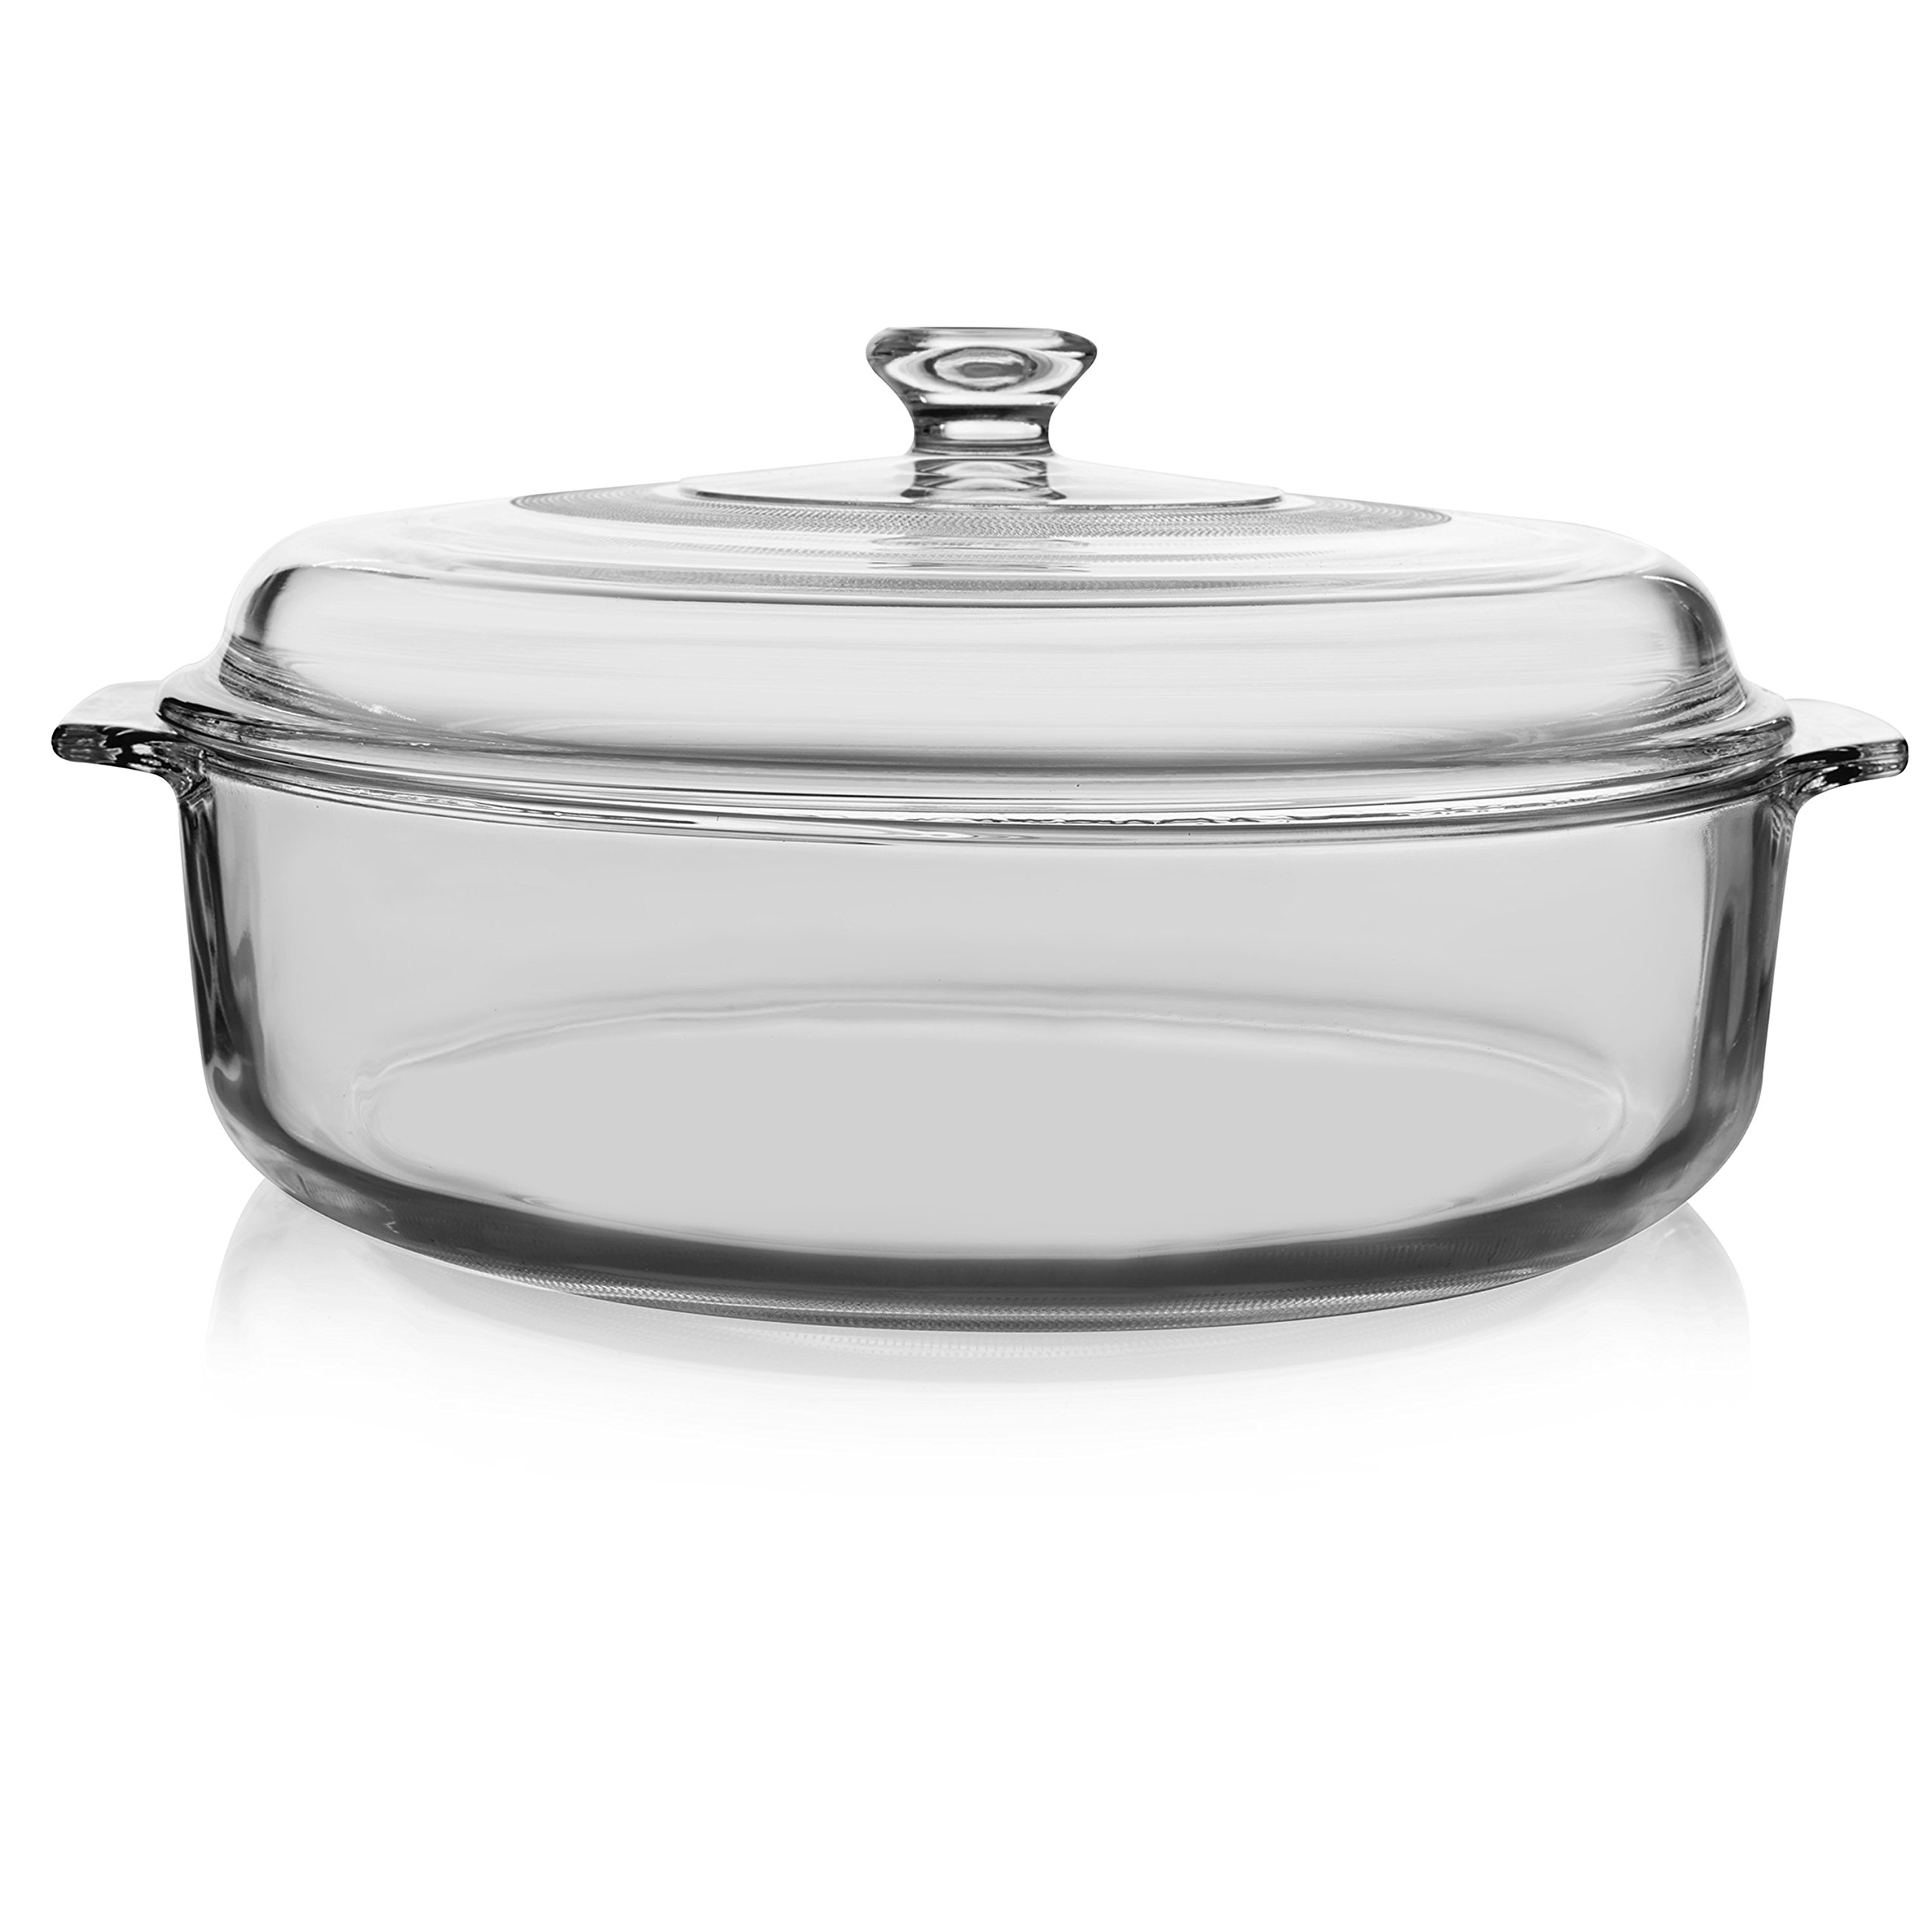 Libbey Baker's Basics 3-quart Glass Casserole by Libbey